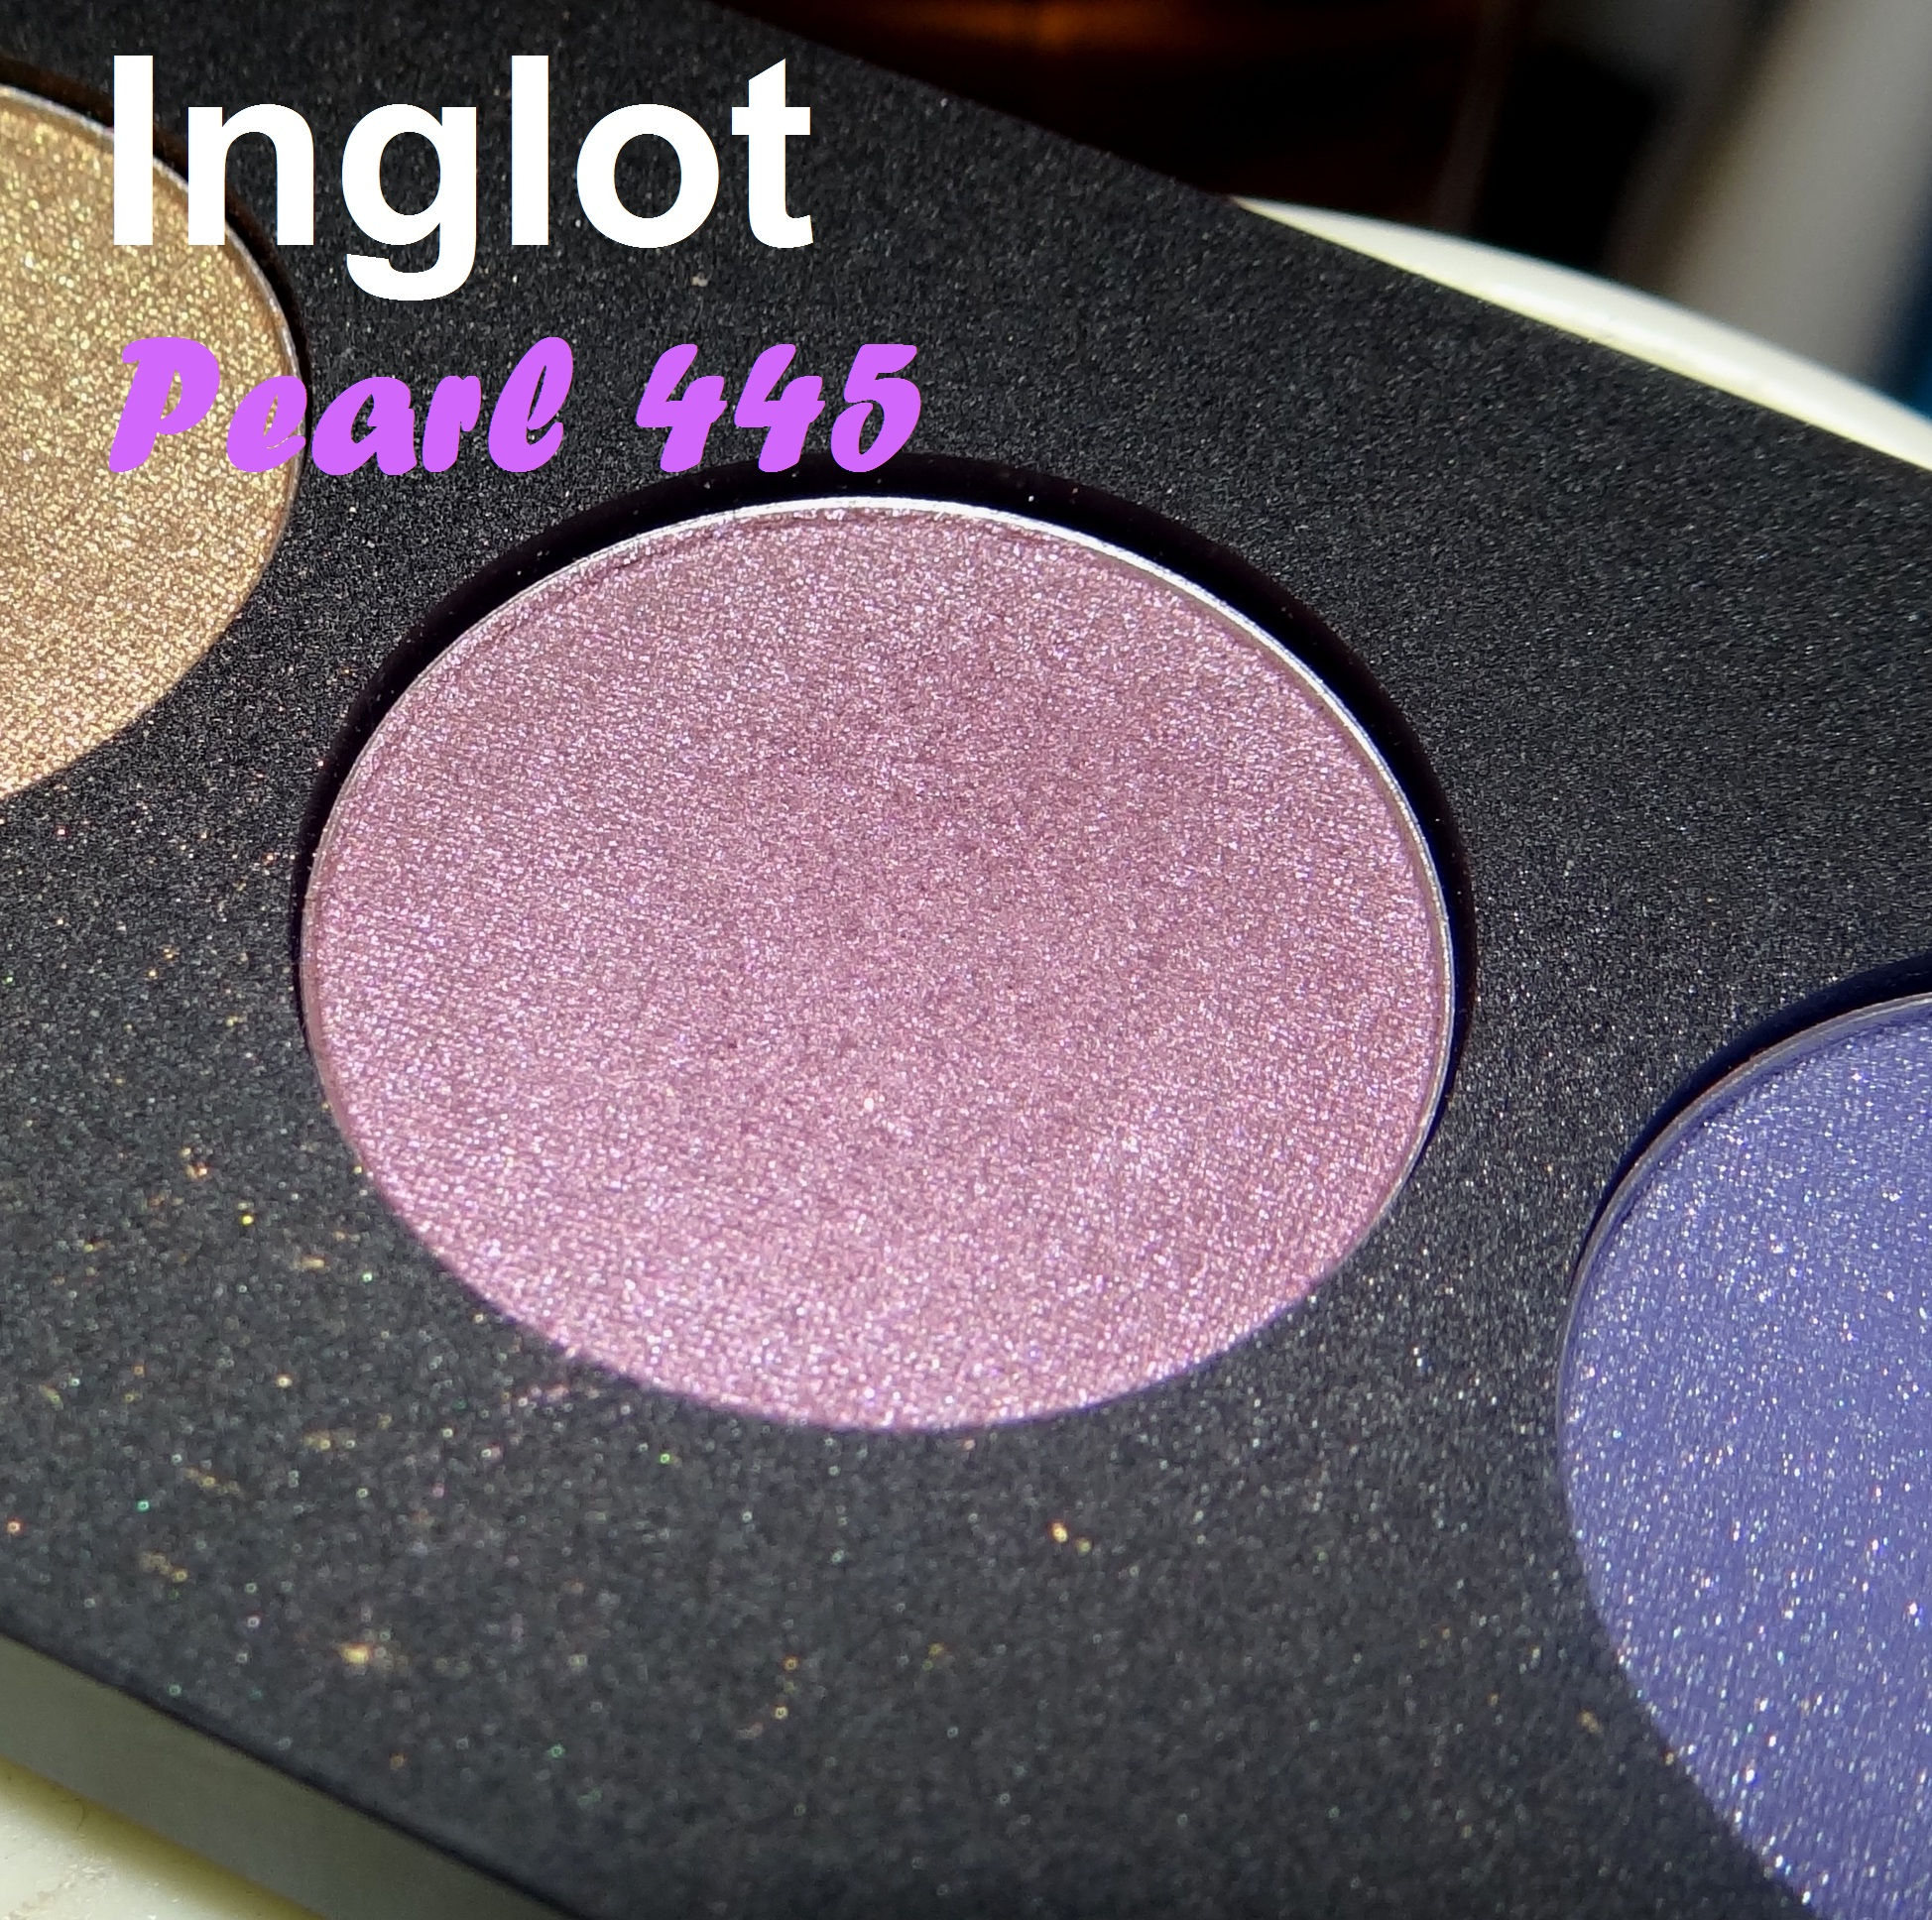 Inglot Pearl eyeshadow 445 swatches